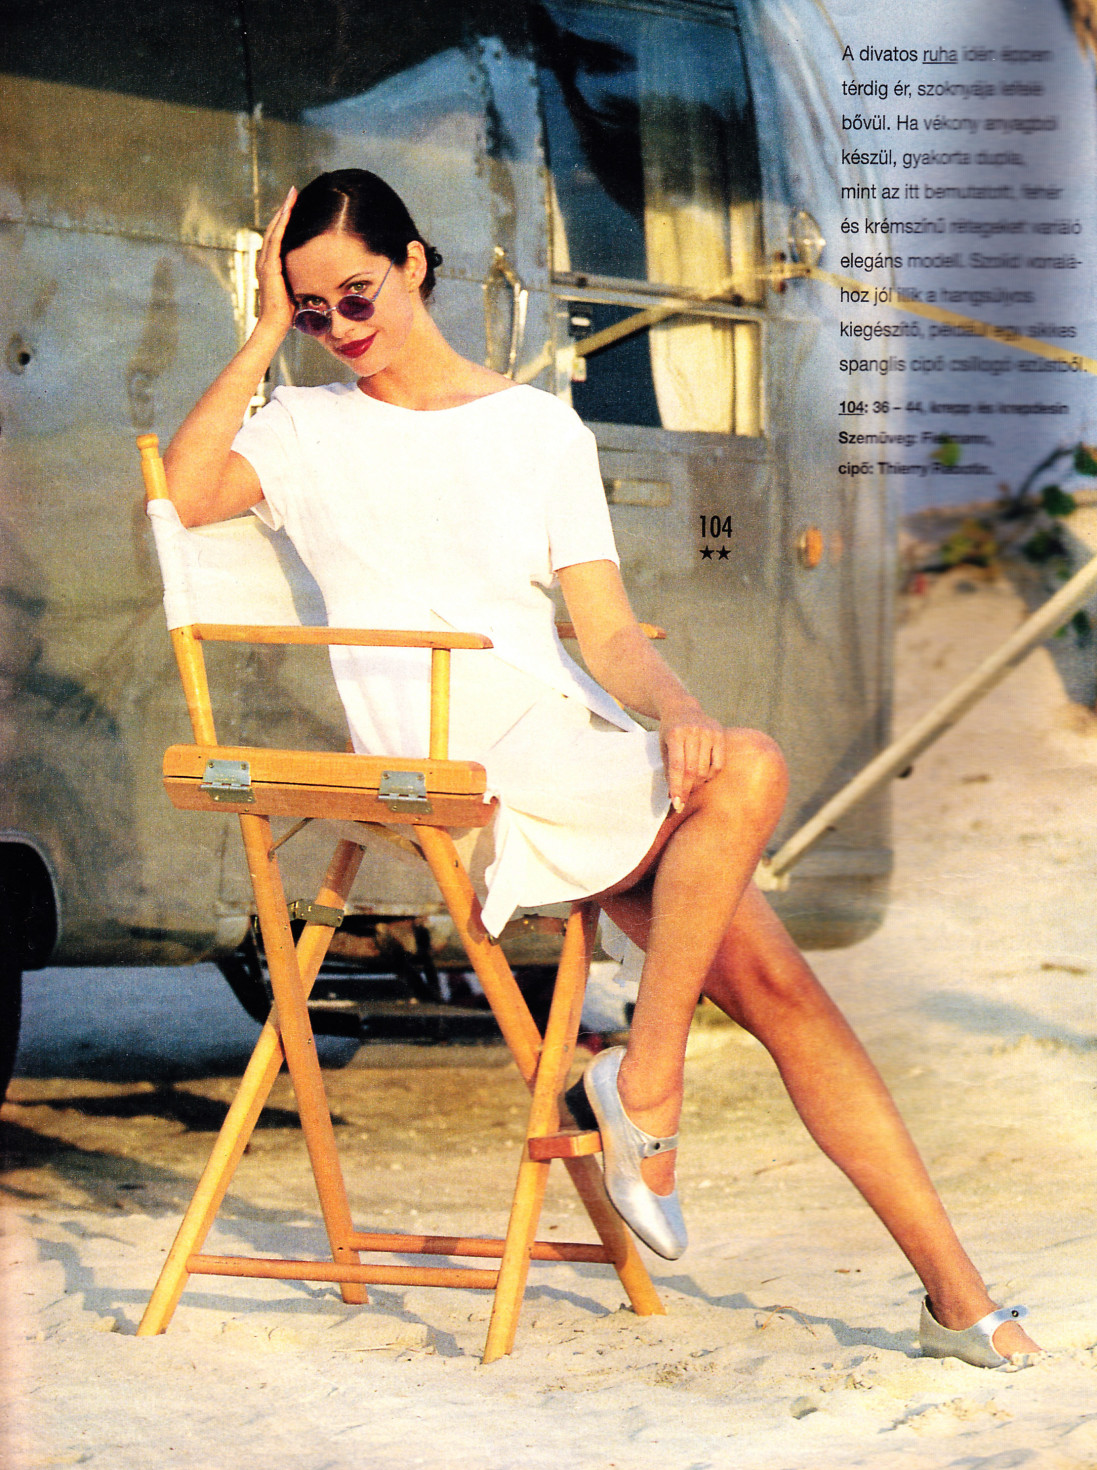 Scanned page with model photo of #104 from Burda 07/1995